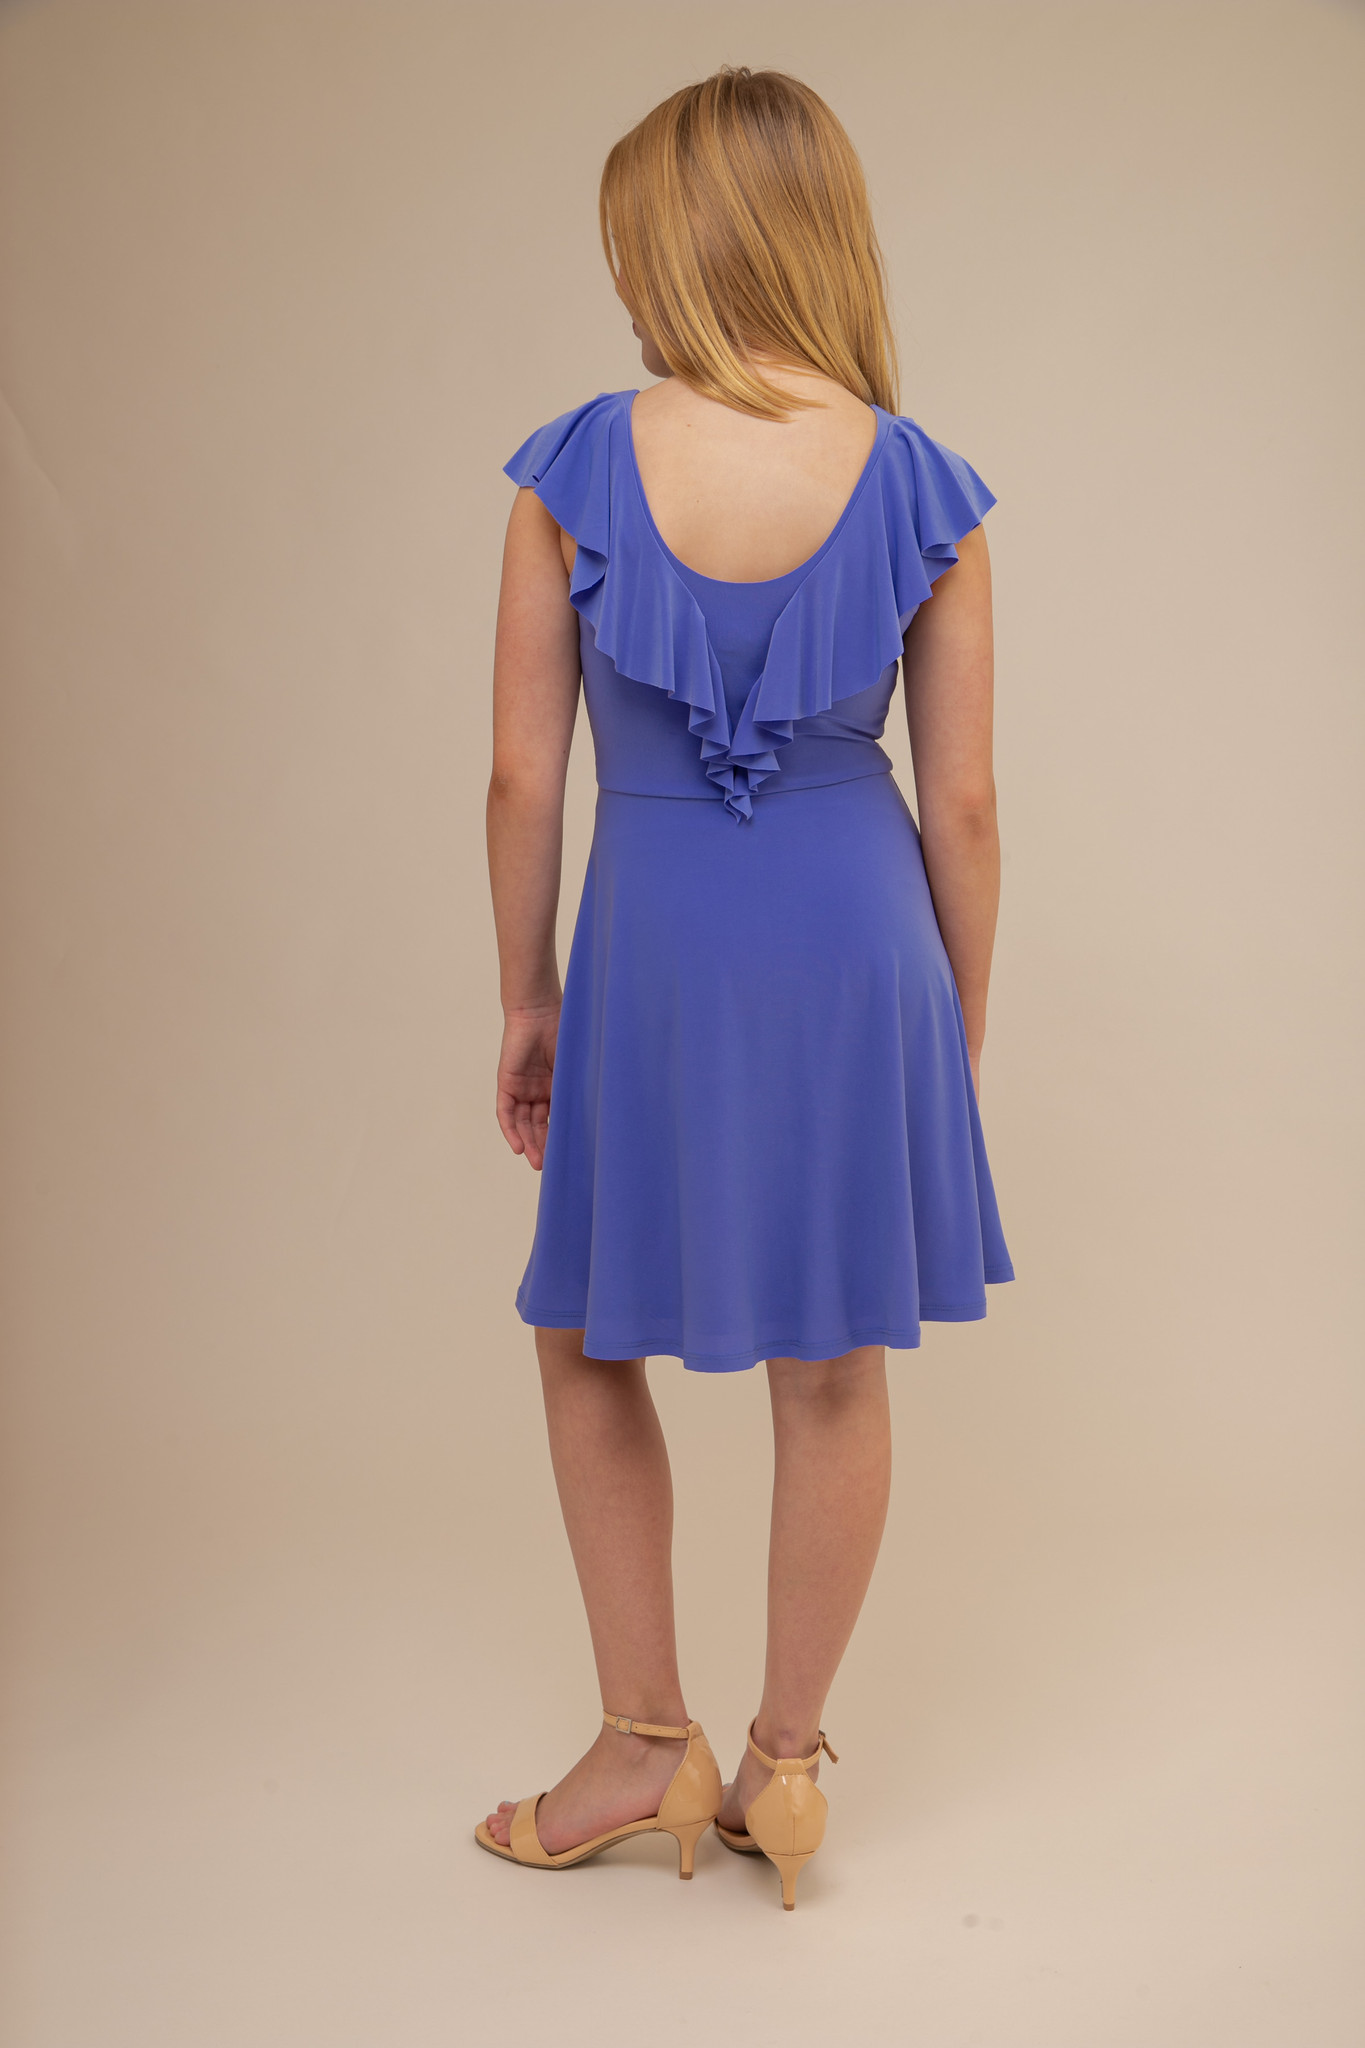 Periwinkle Flutter Sleeve Dress in Longer Length back.